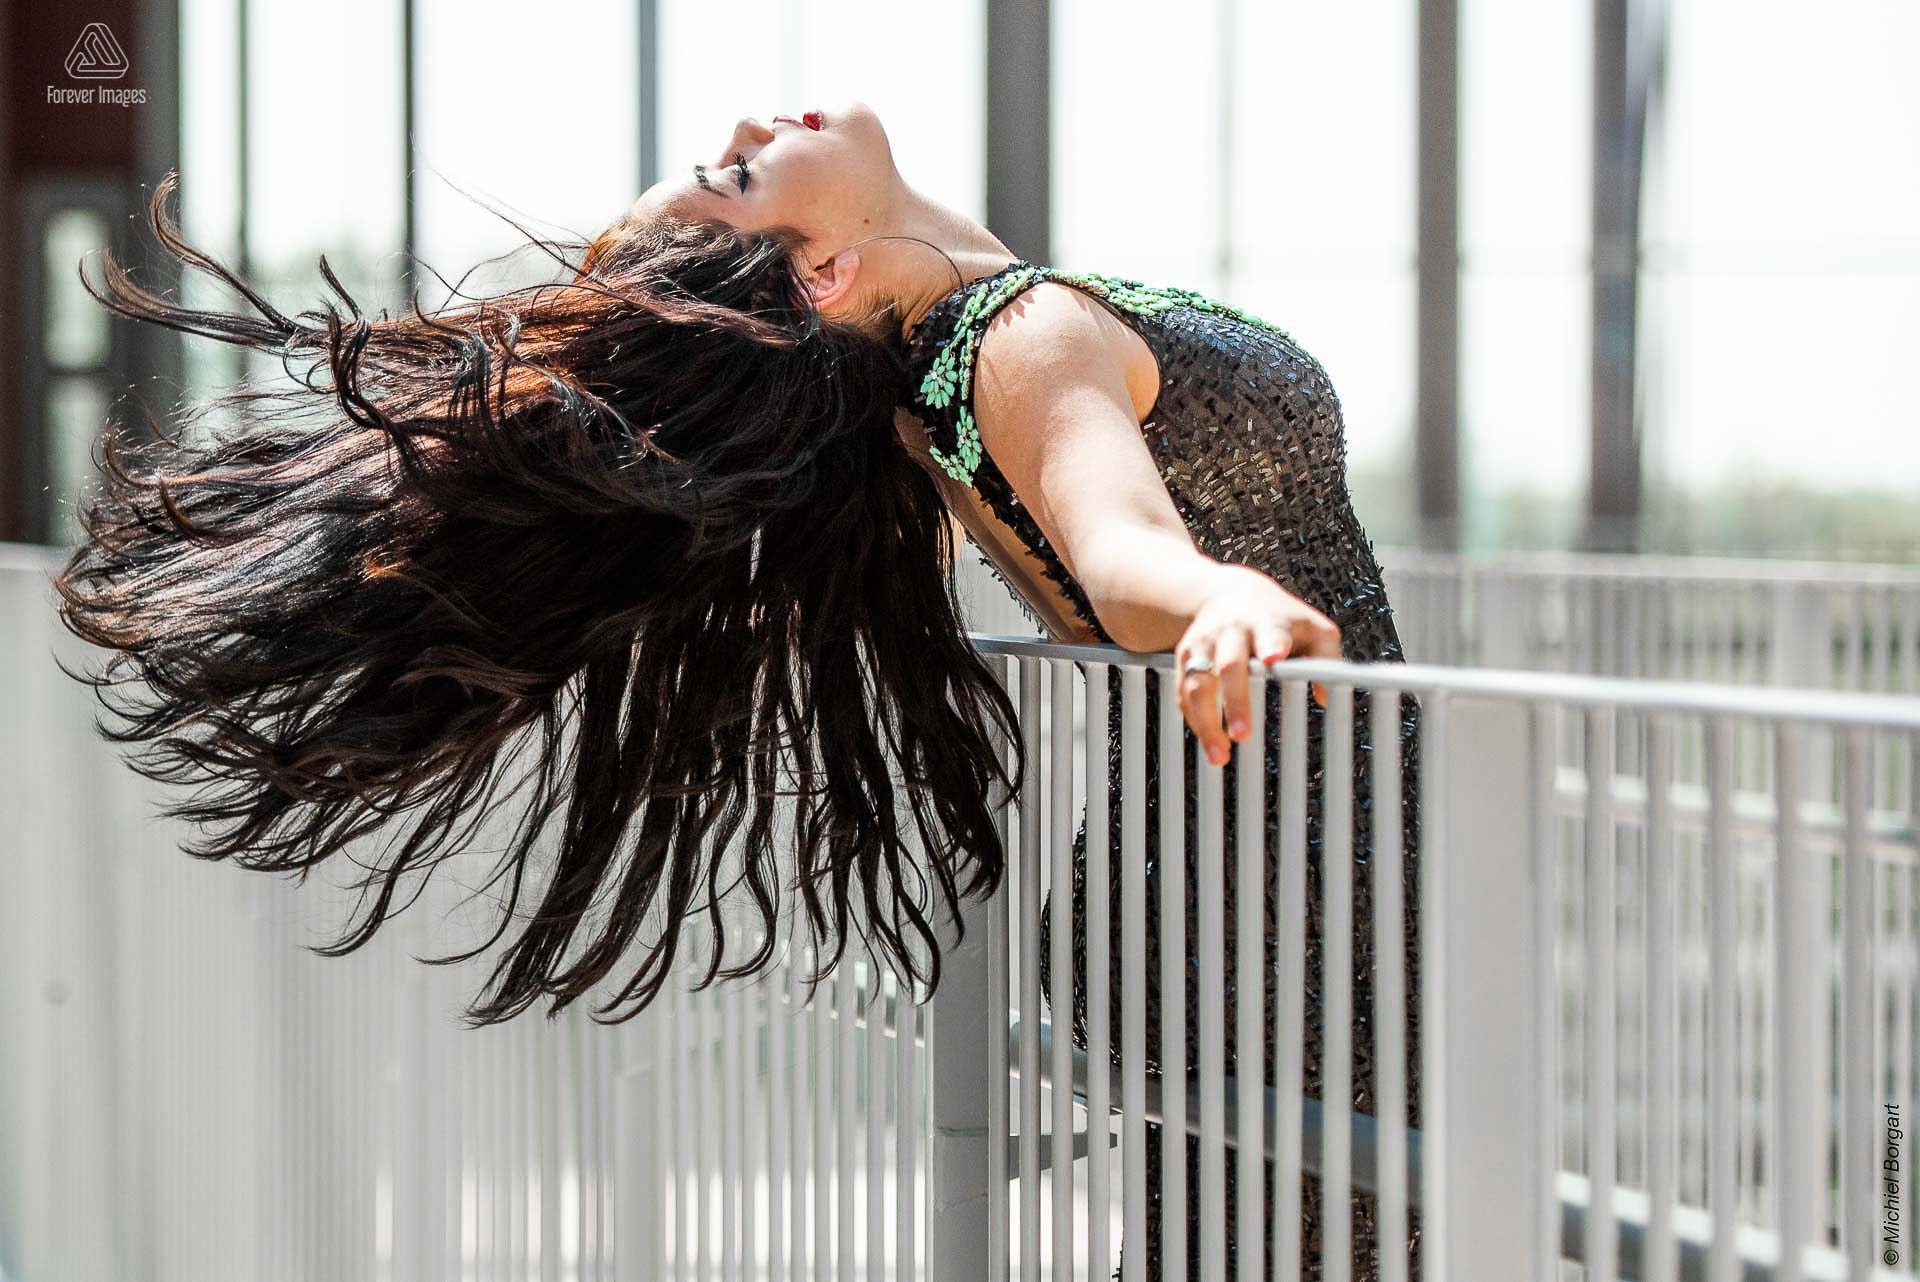 Fashion photo portrait lady hair flip over railing black dress | Daphna Akkermans David Cardenas | Fashion Photographer Michiel Borgart - Forever Images.